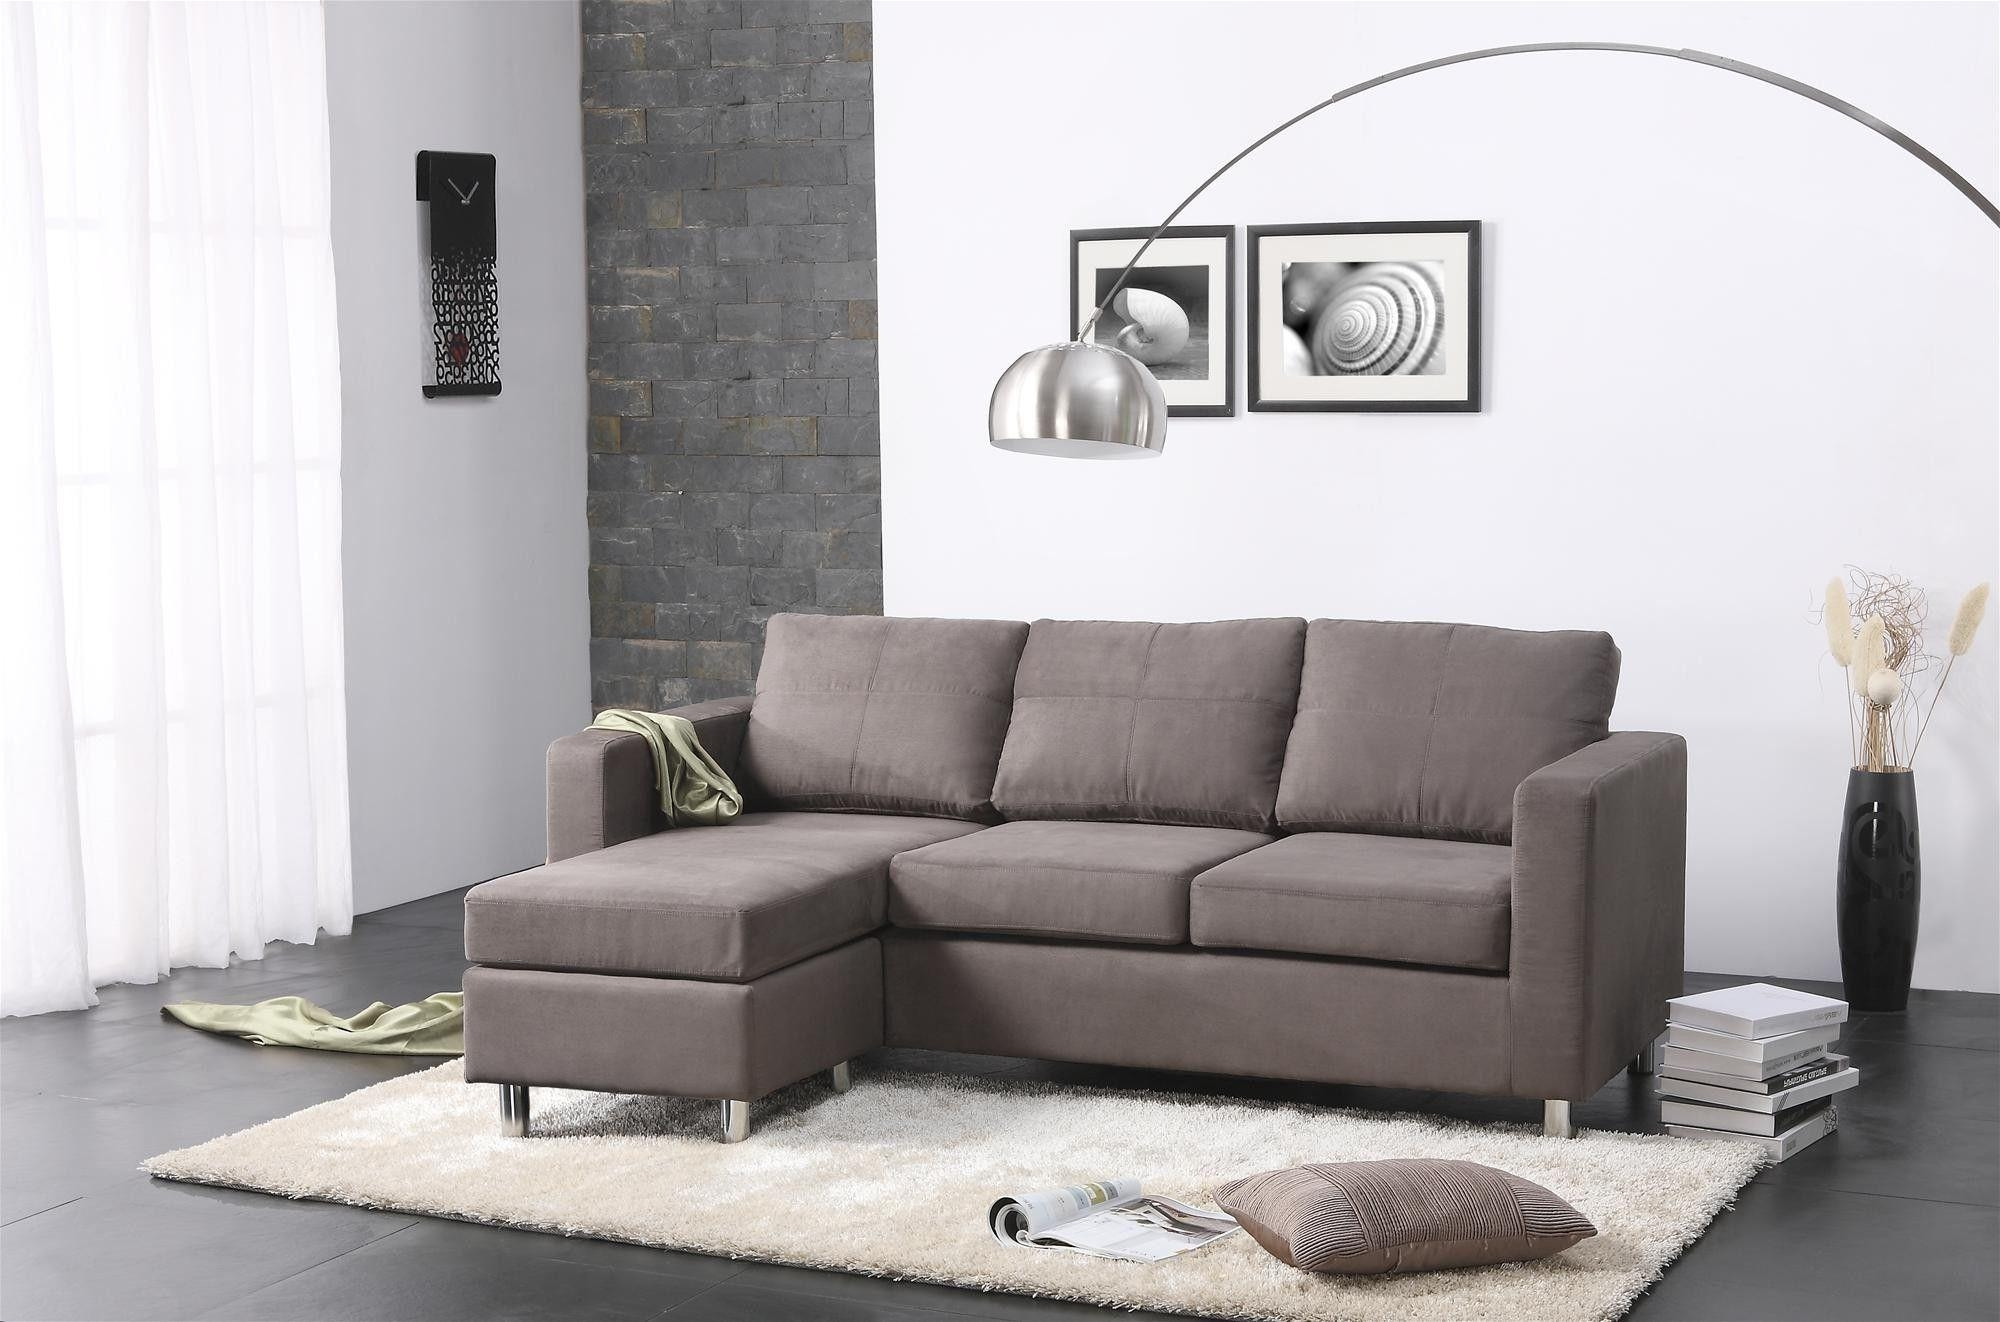 20 Inspirations Small Sectional Sofas for Small Spaces